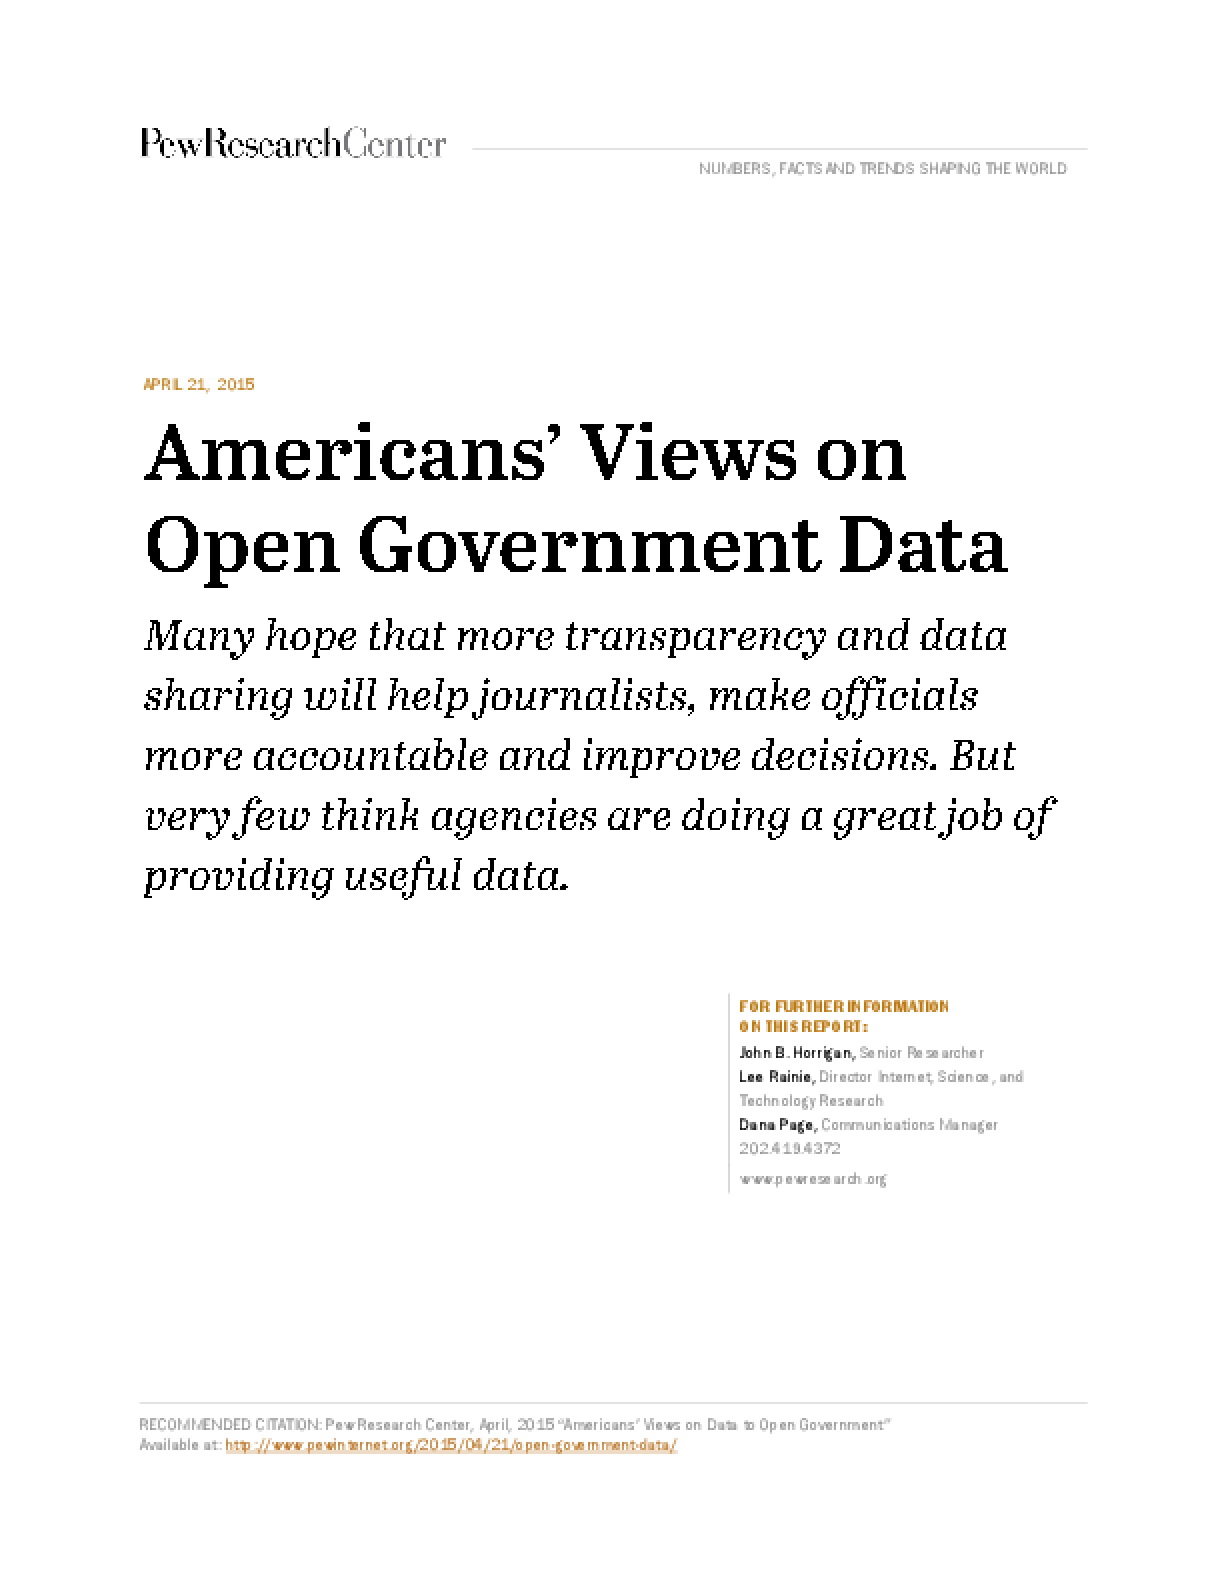 Americans' Views on Open Government Data